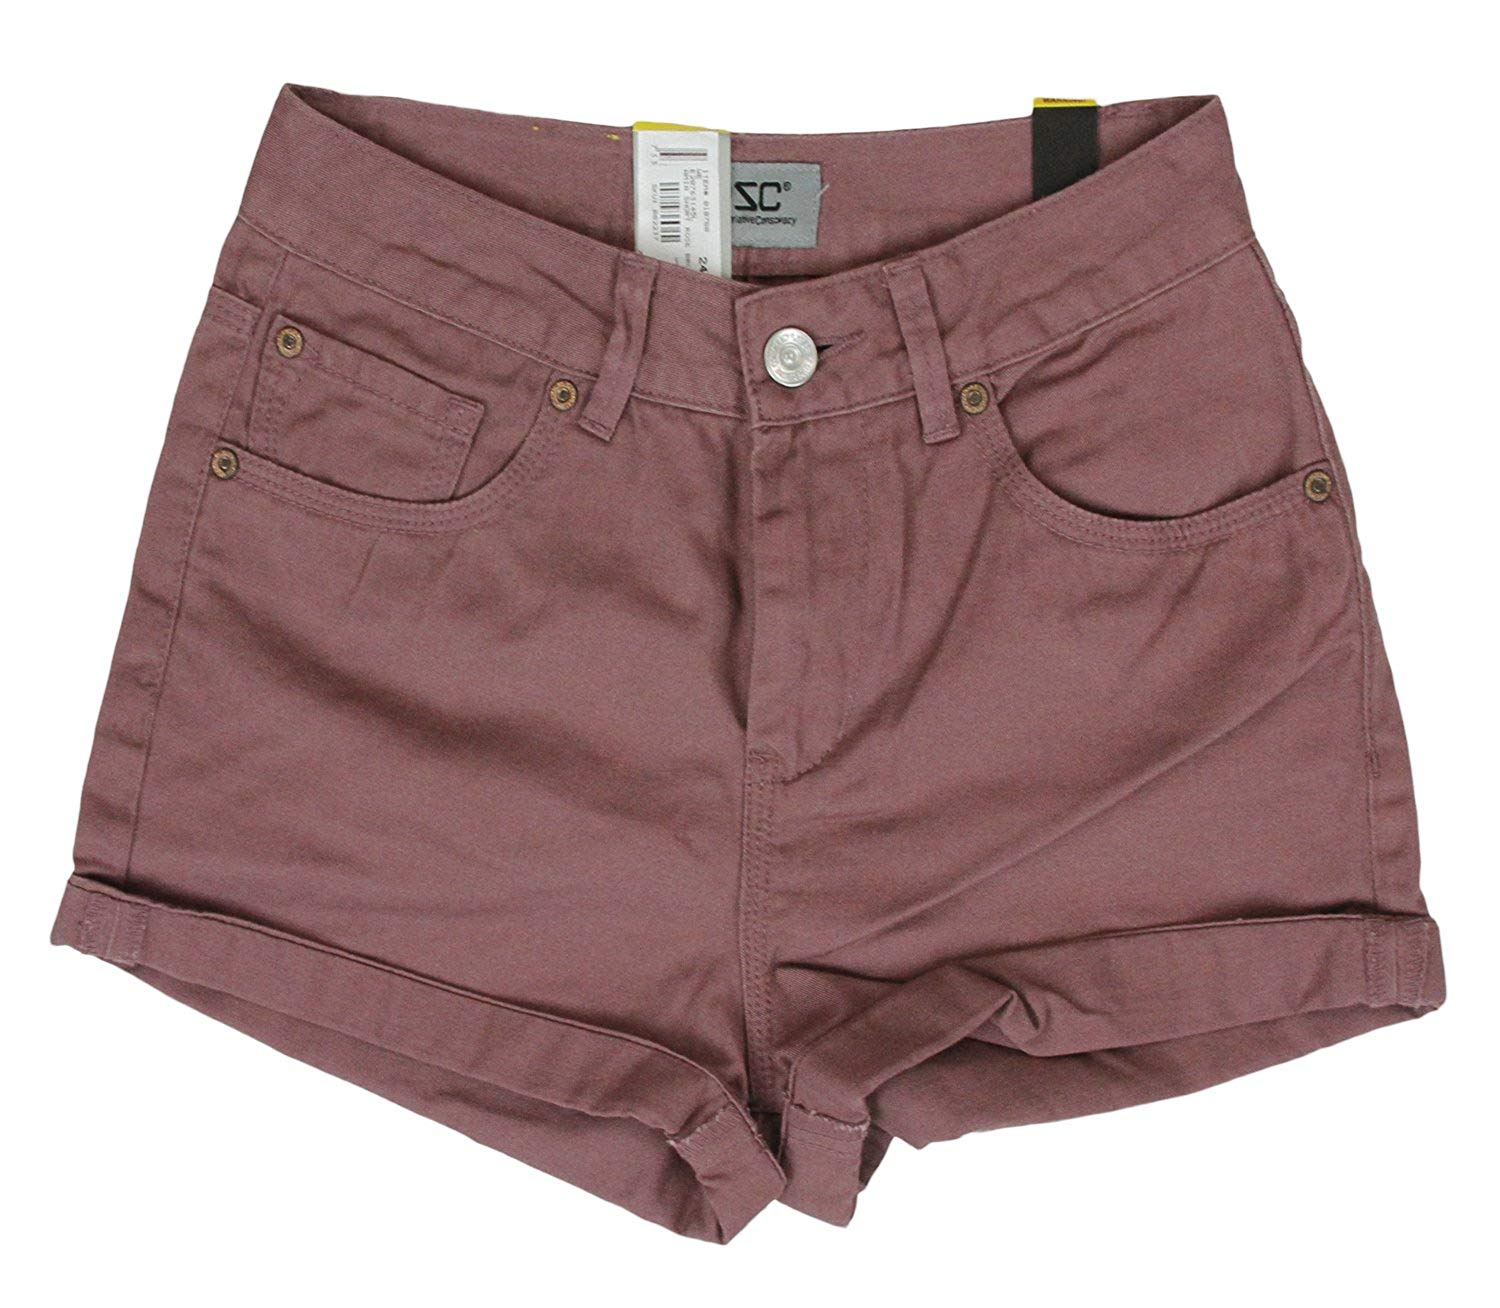 Wesc Women's Amia Shorts